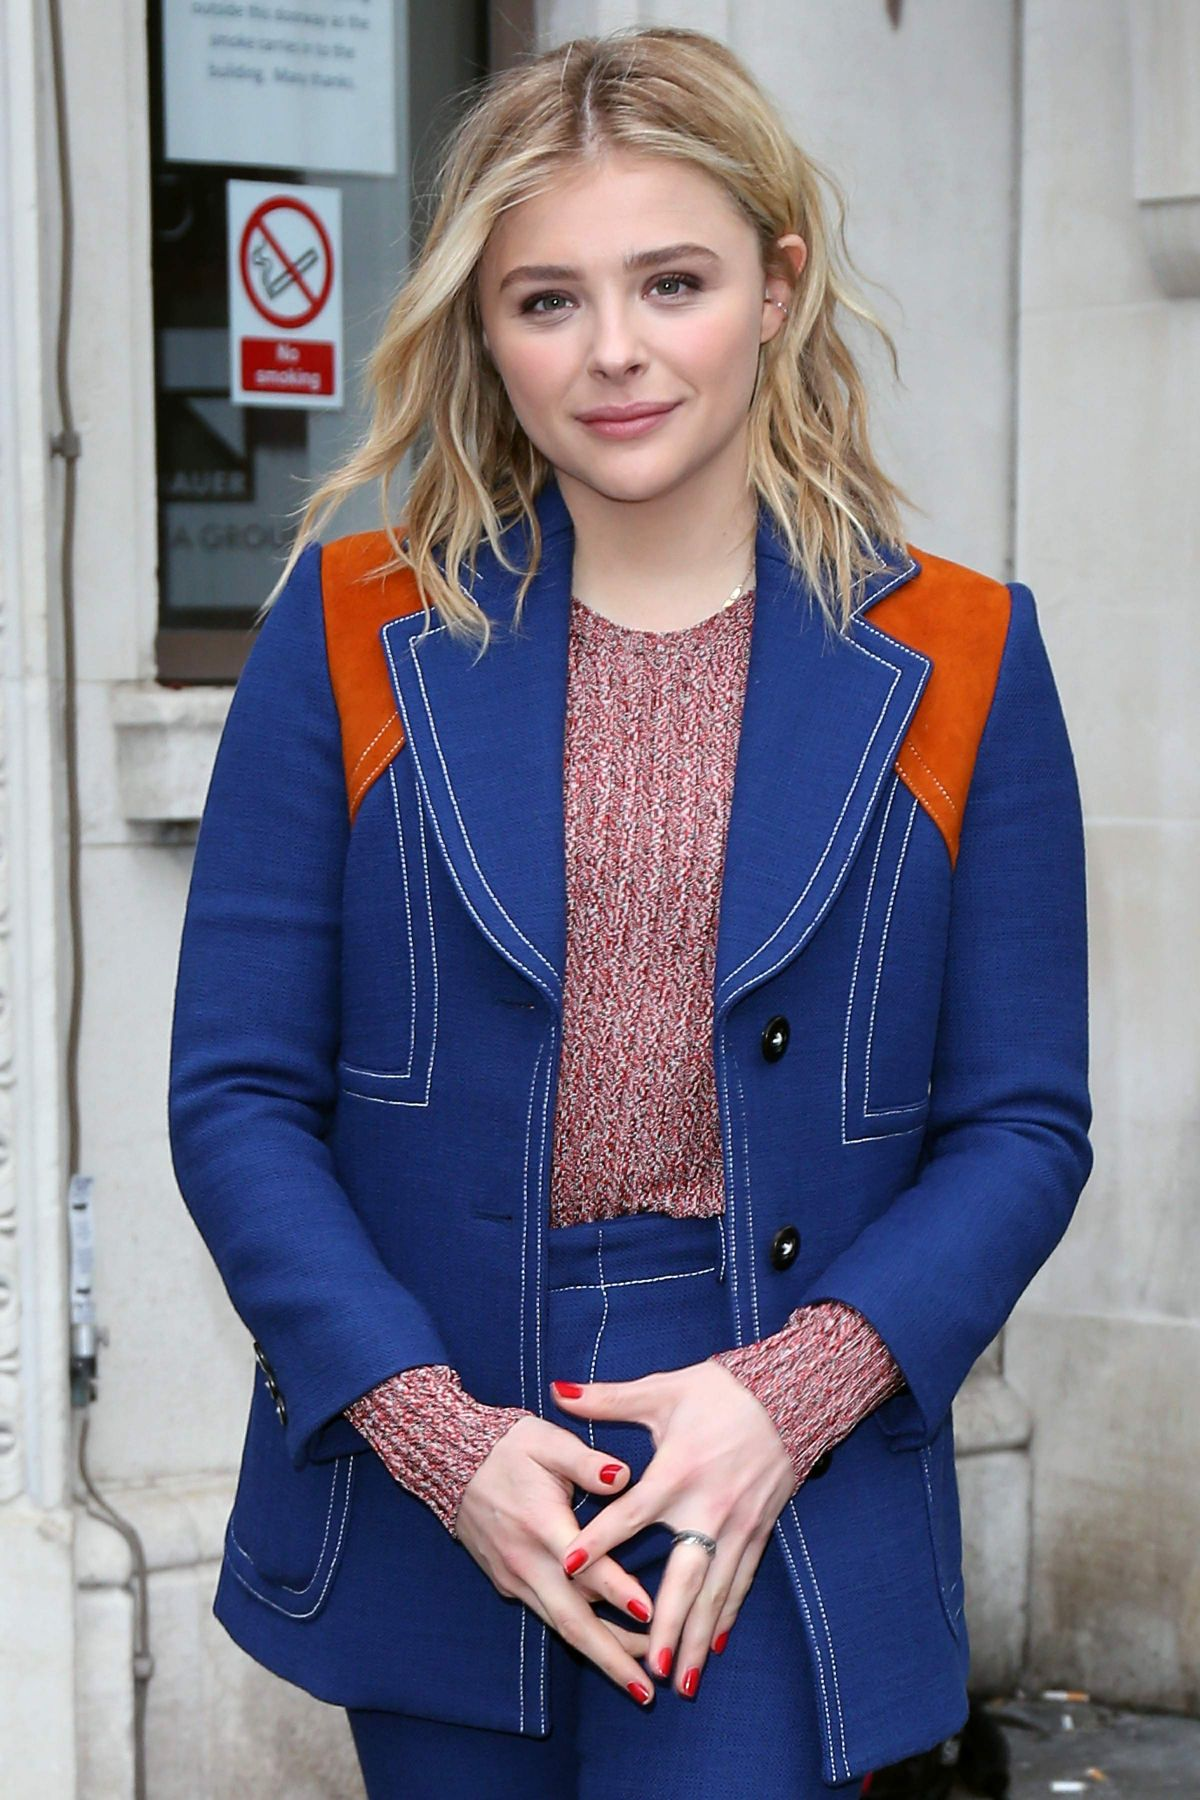 CHLOE MORETZ at The Bauer Media Radio Studios in London 01/21/2016